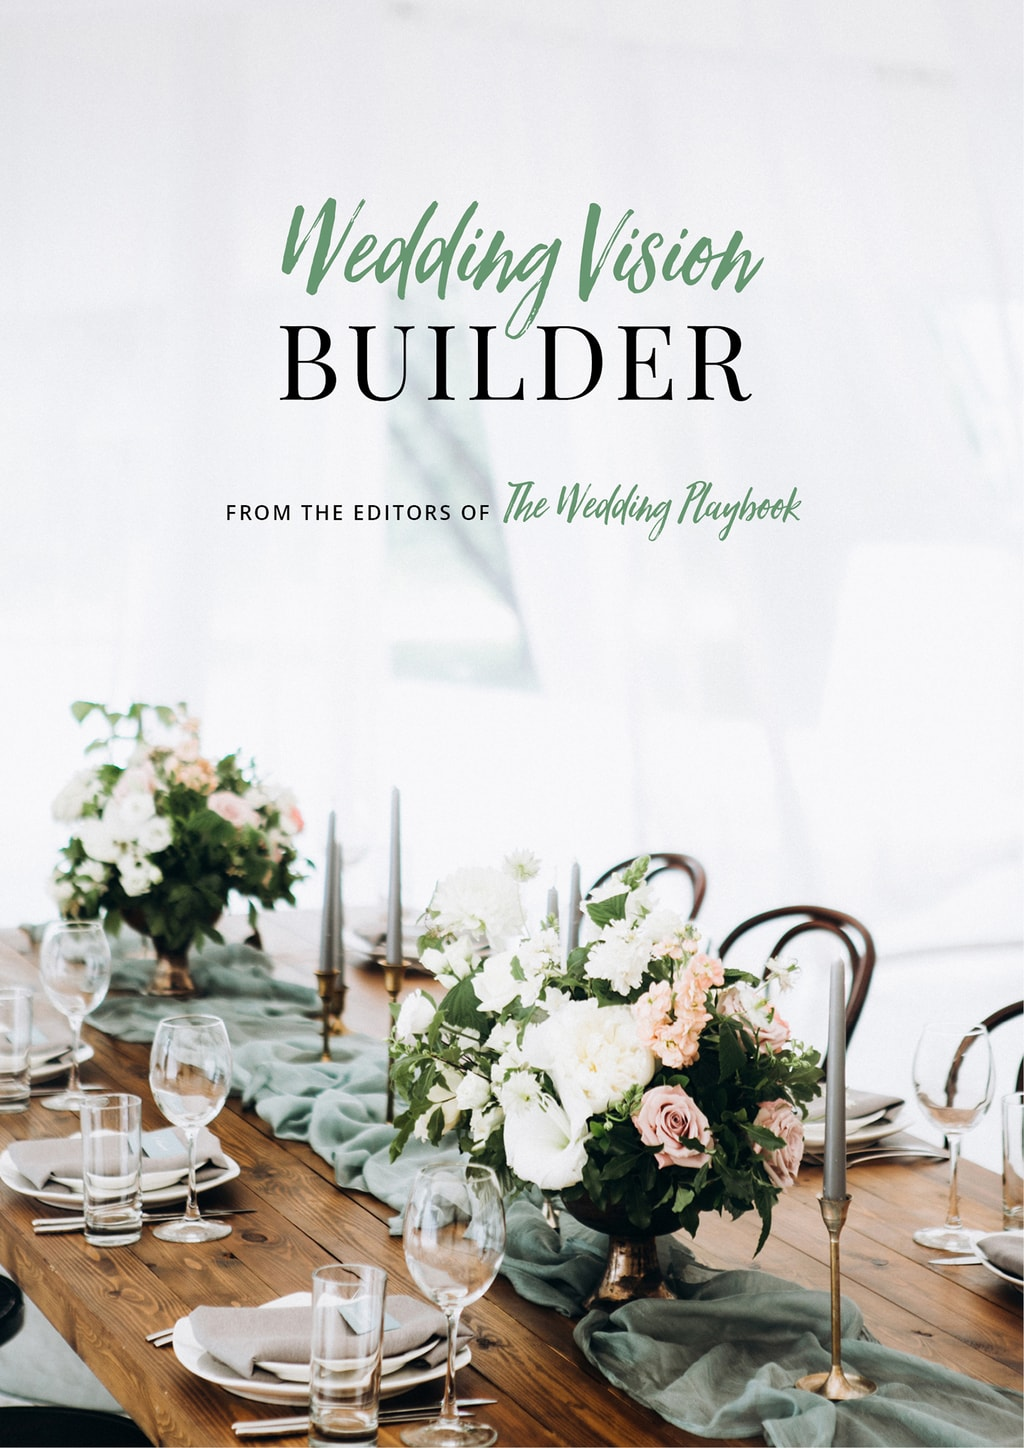 Wedding Vision Builder Cover